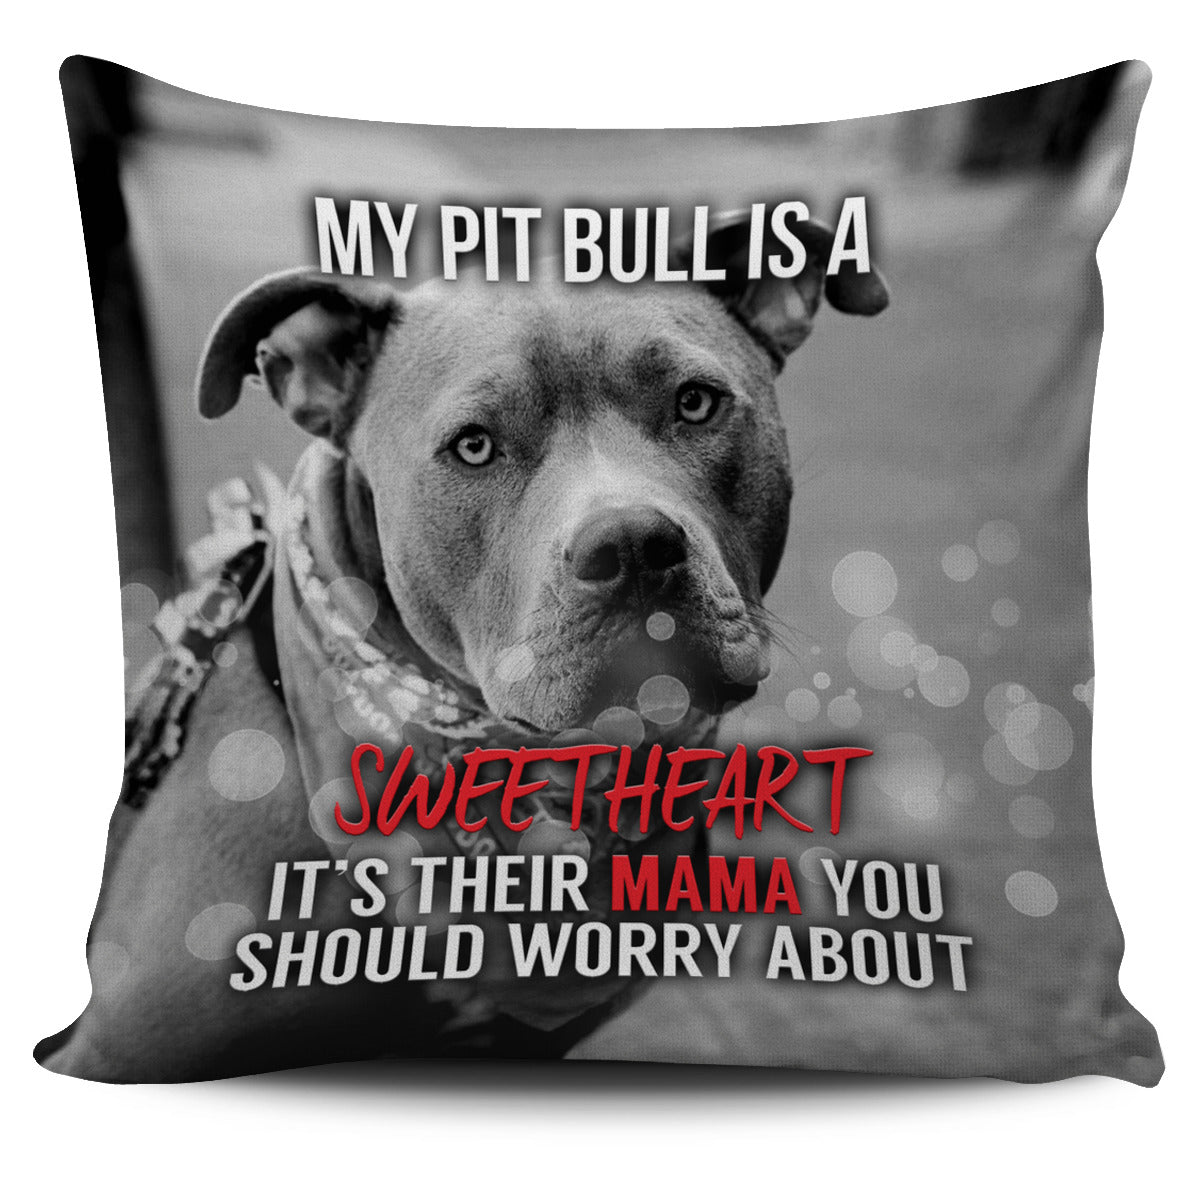 My Pit Is A Sweetheart Pillow Cover